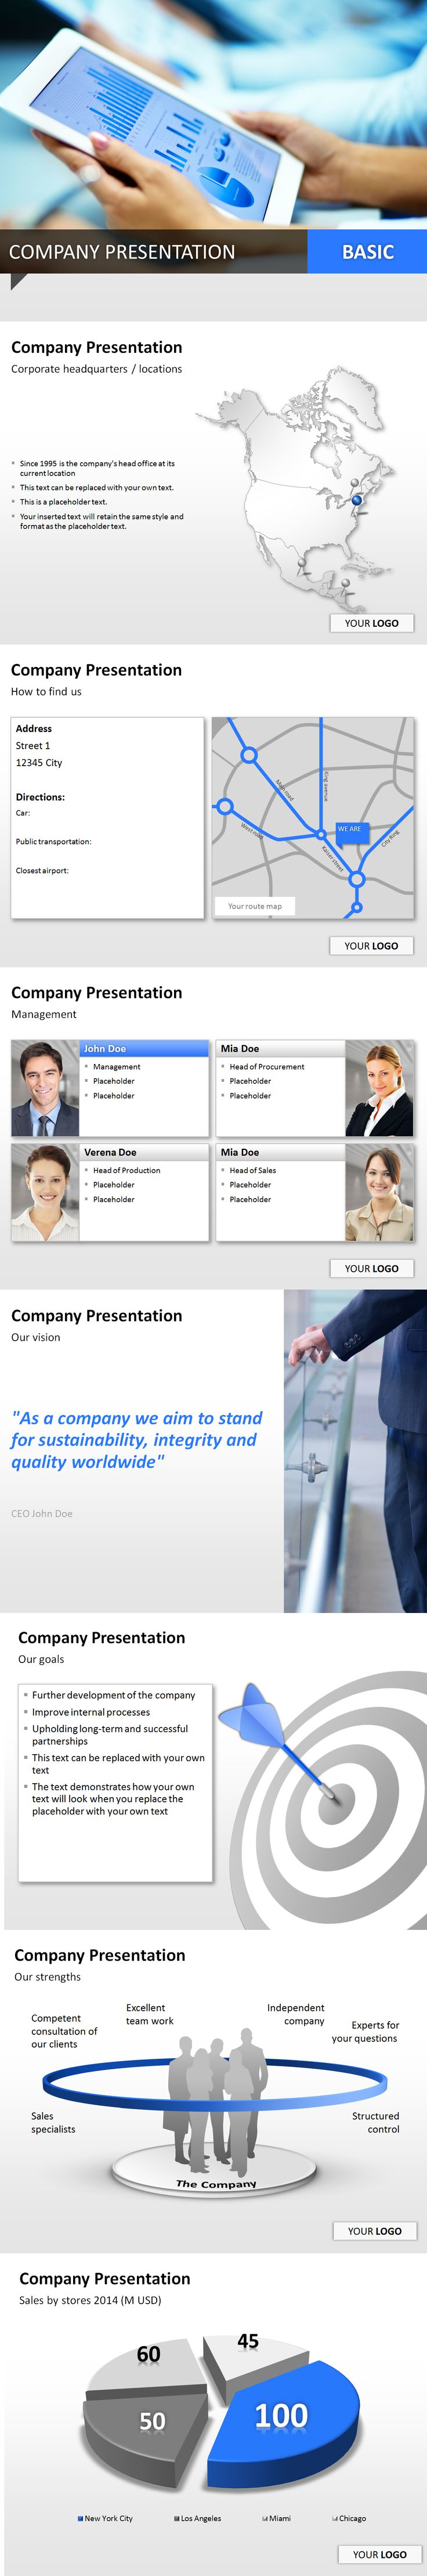 Present your #company with high-quality #PowerPoint templates and convince your audience with an amazing #presentation!